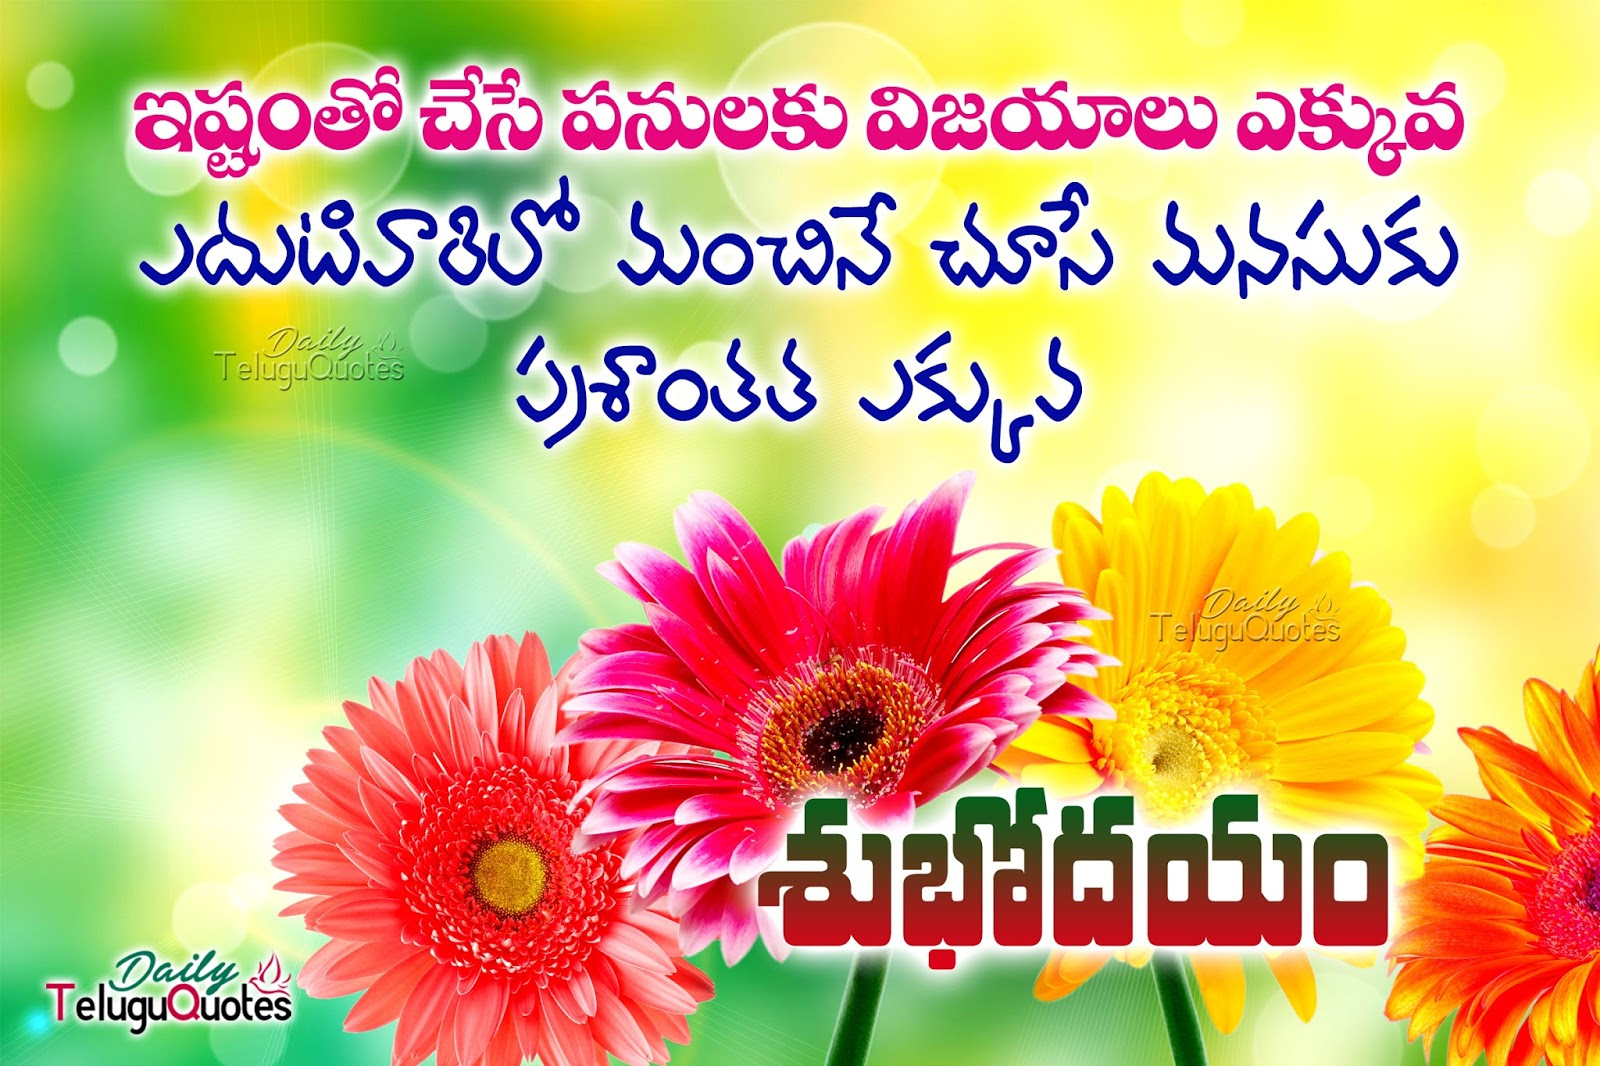 Good Morning Telugu Quotes Hd Images Good Quotes